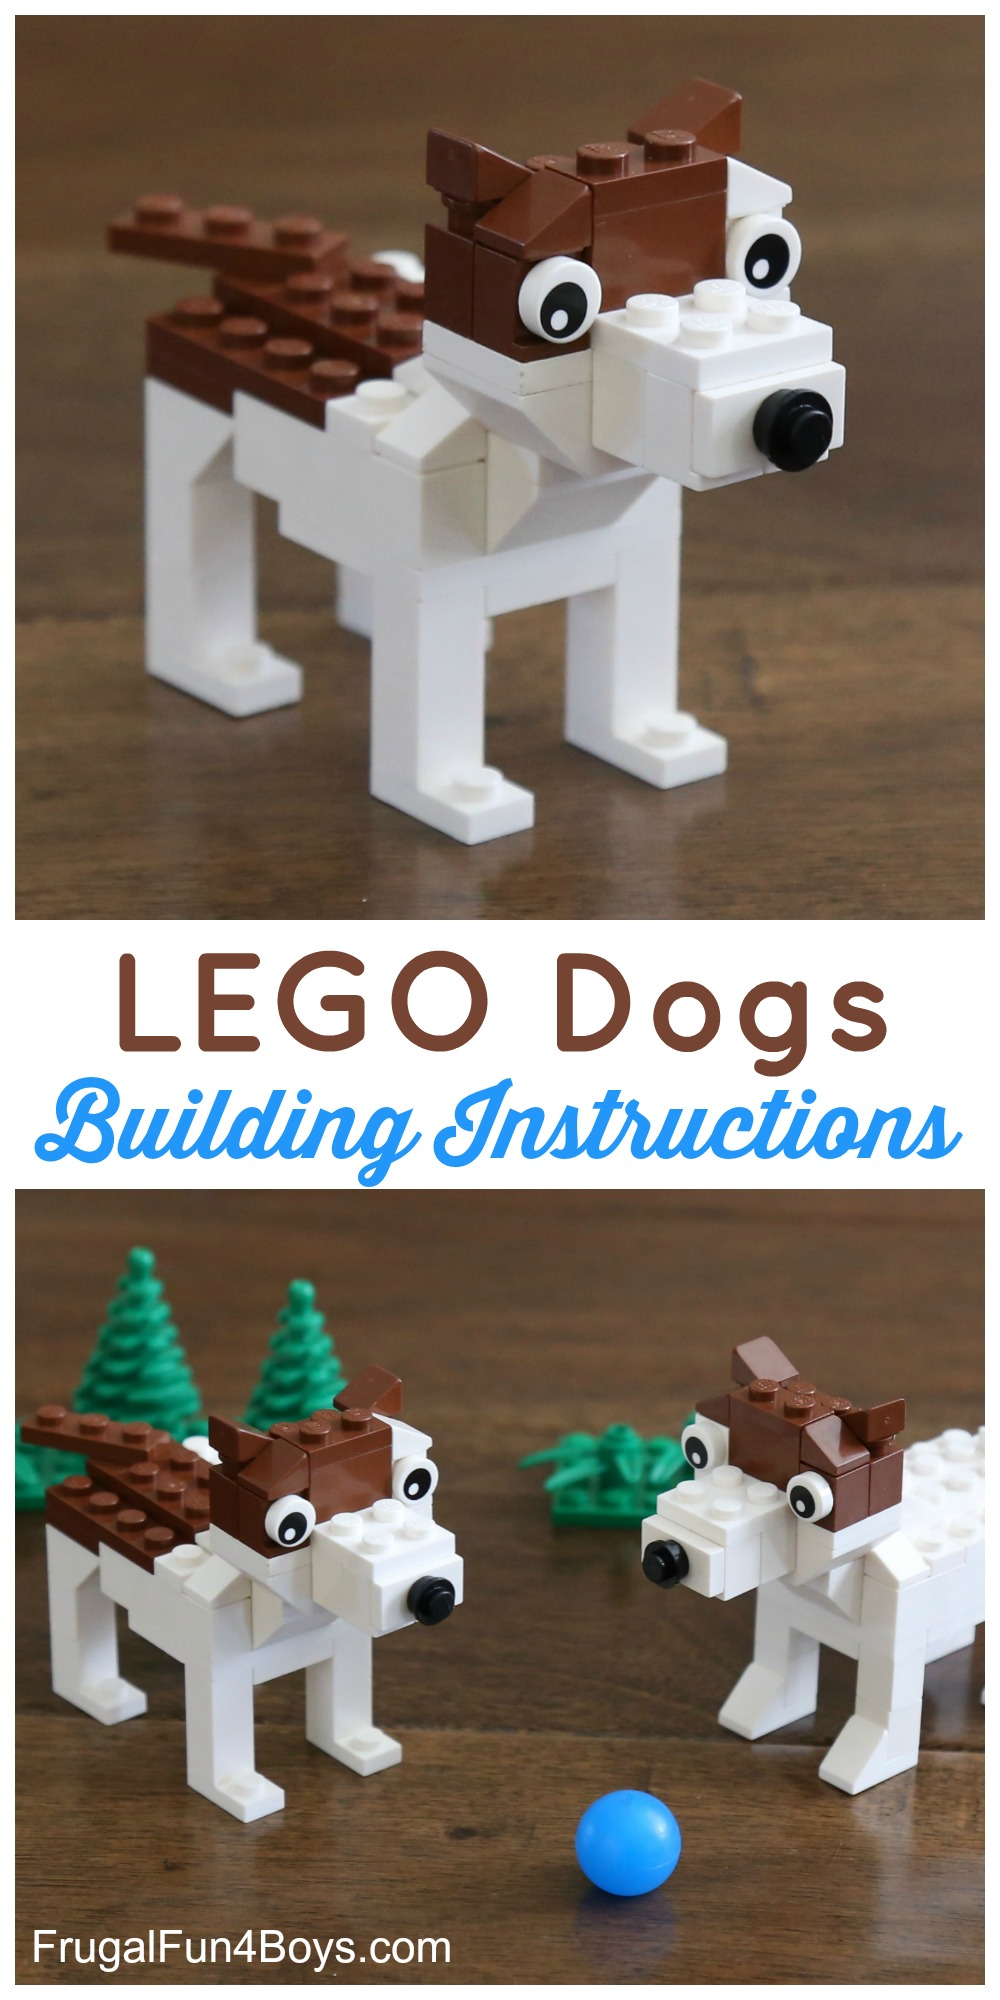 Build A Terrier Dog With Lego Bricks Frugal Fun For Boys And Girls